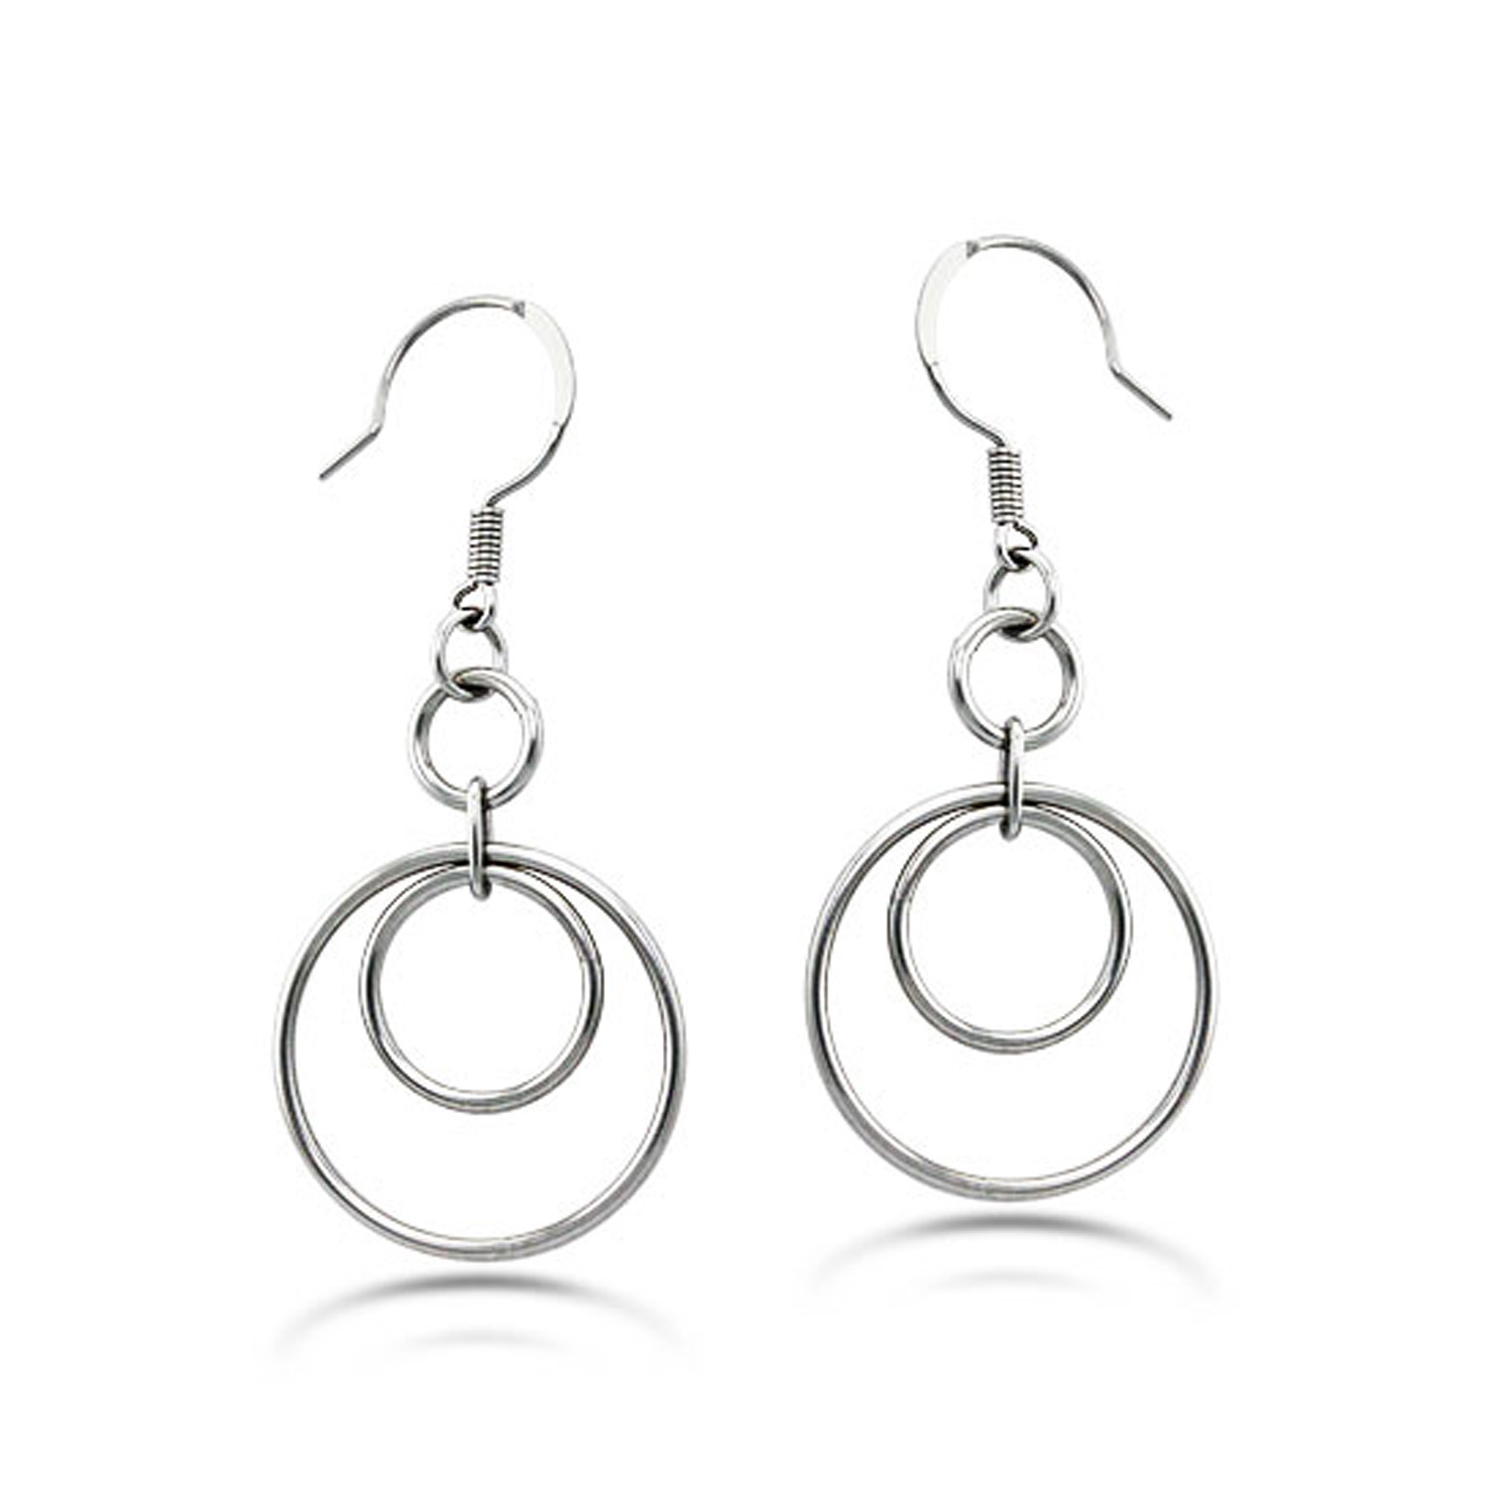 Stainless Steel Dangle HOOP EARRINGS